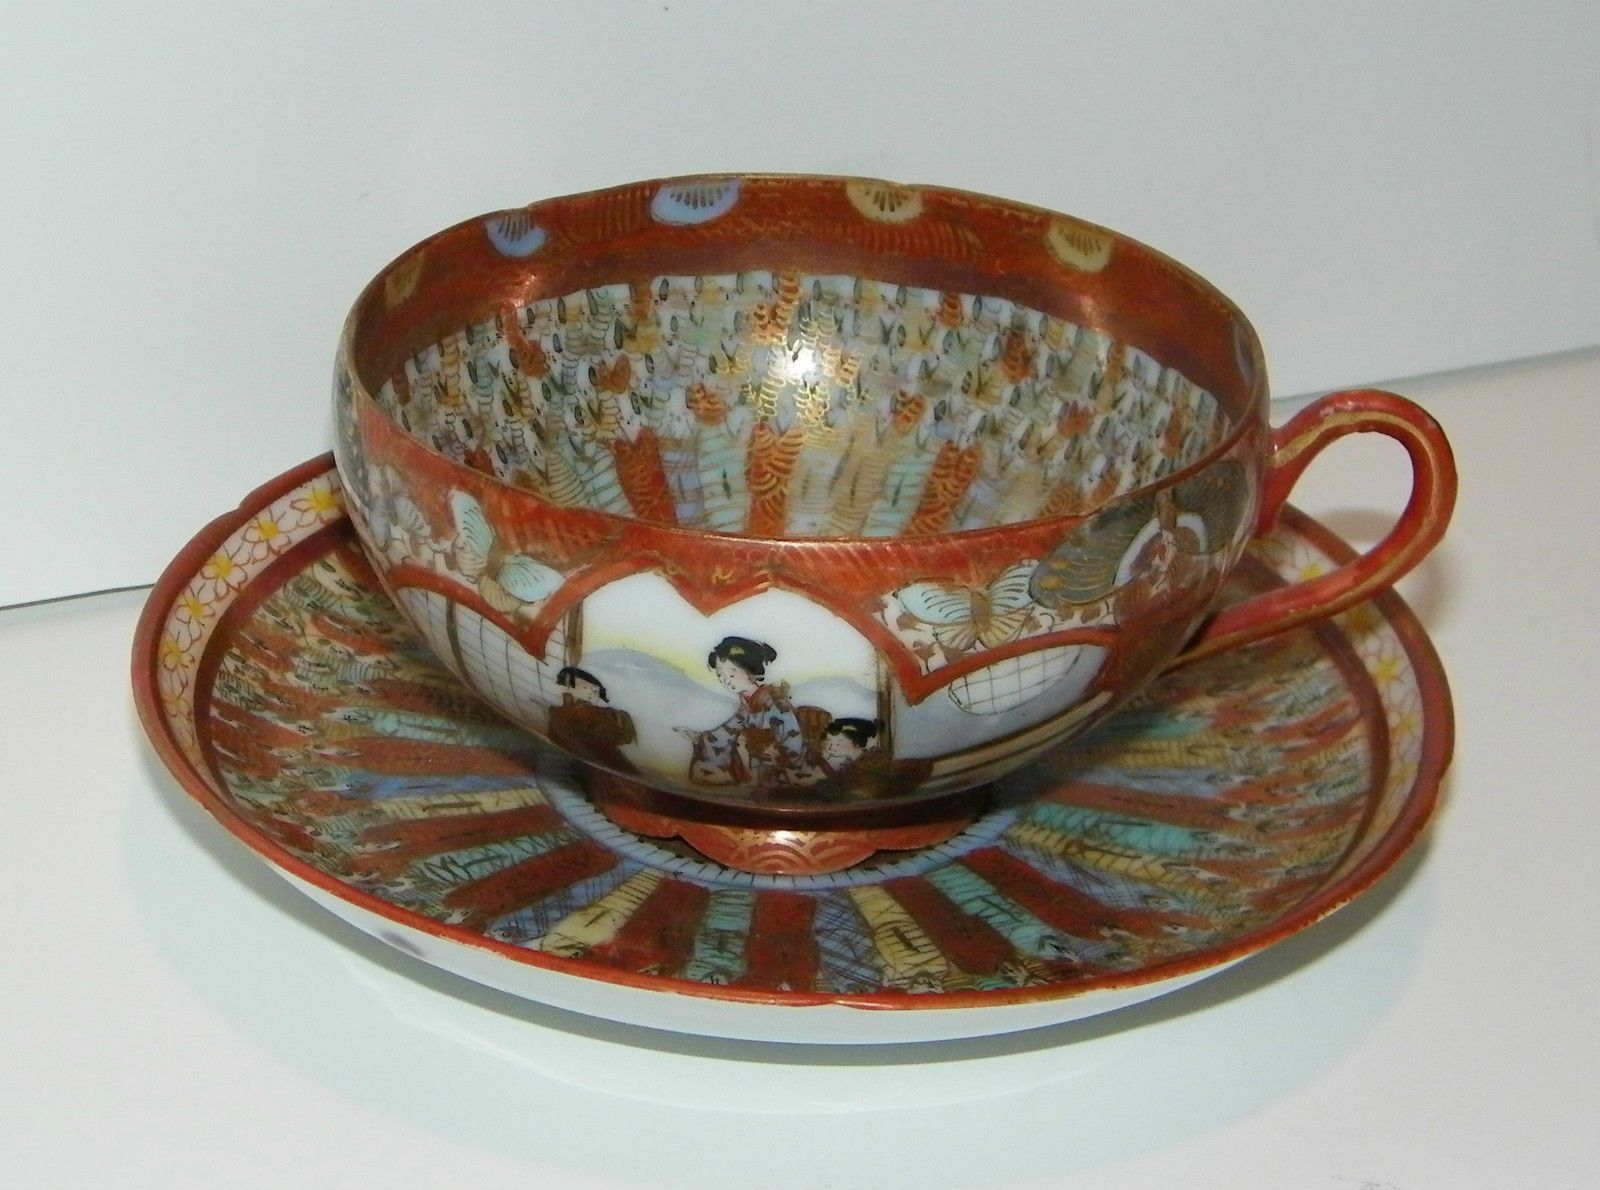 Egg-shell cup and saucer